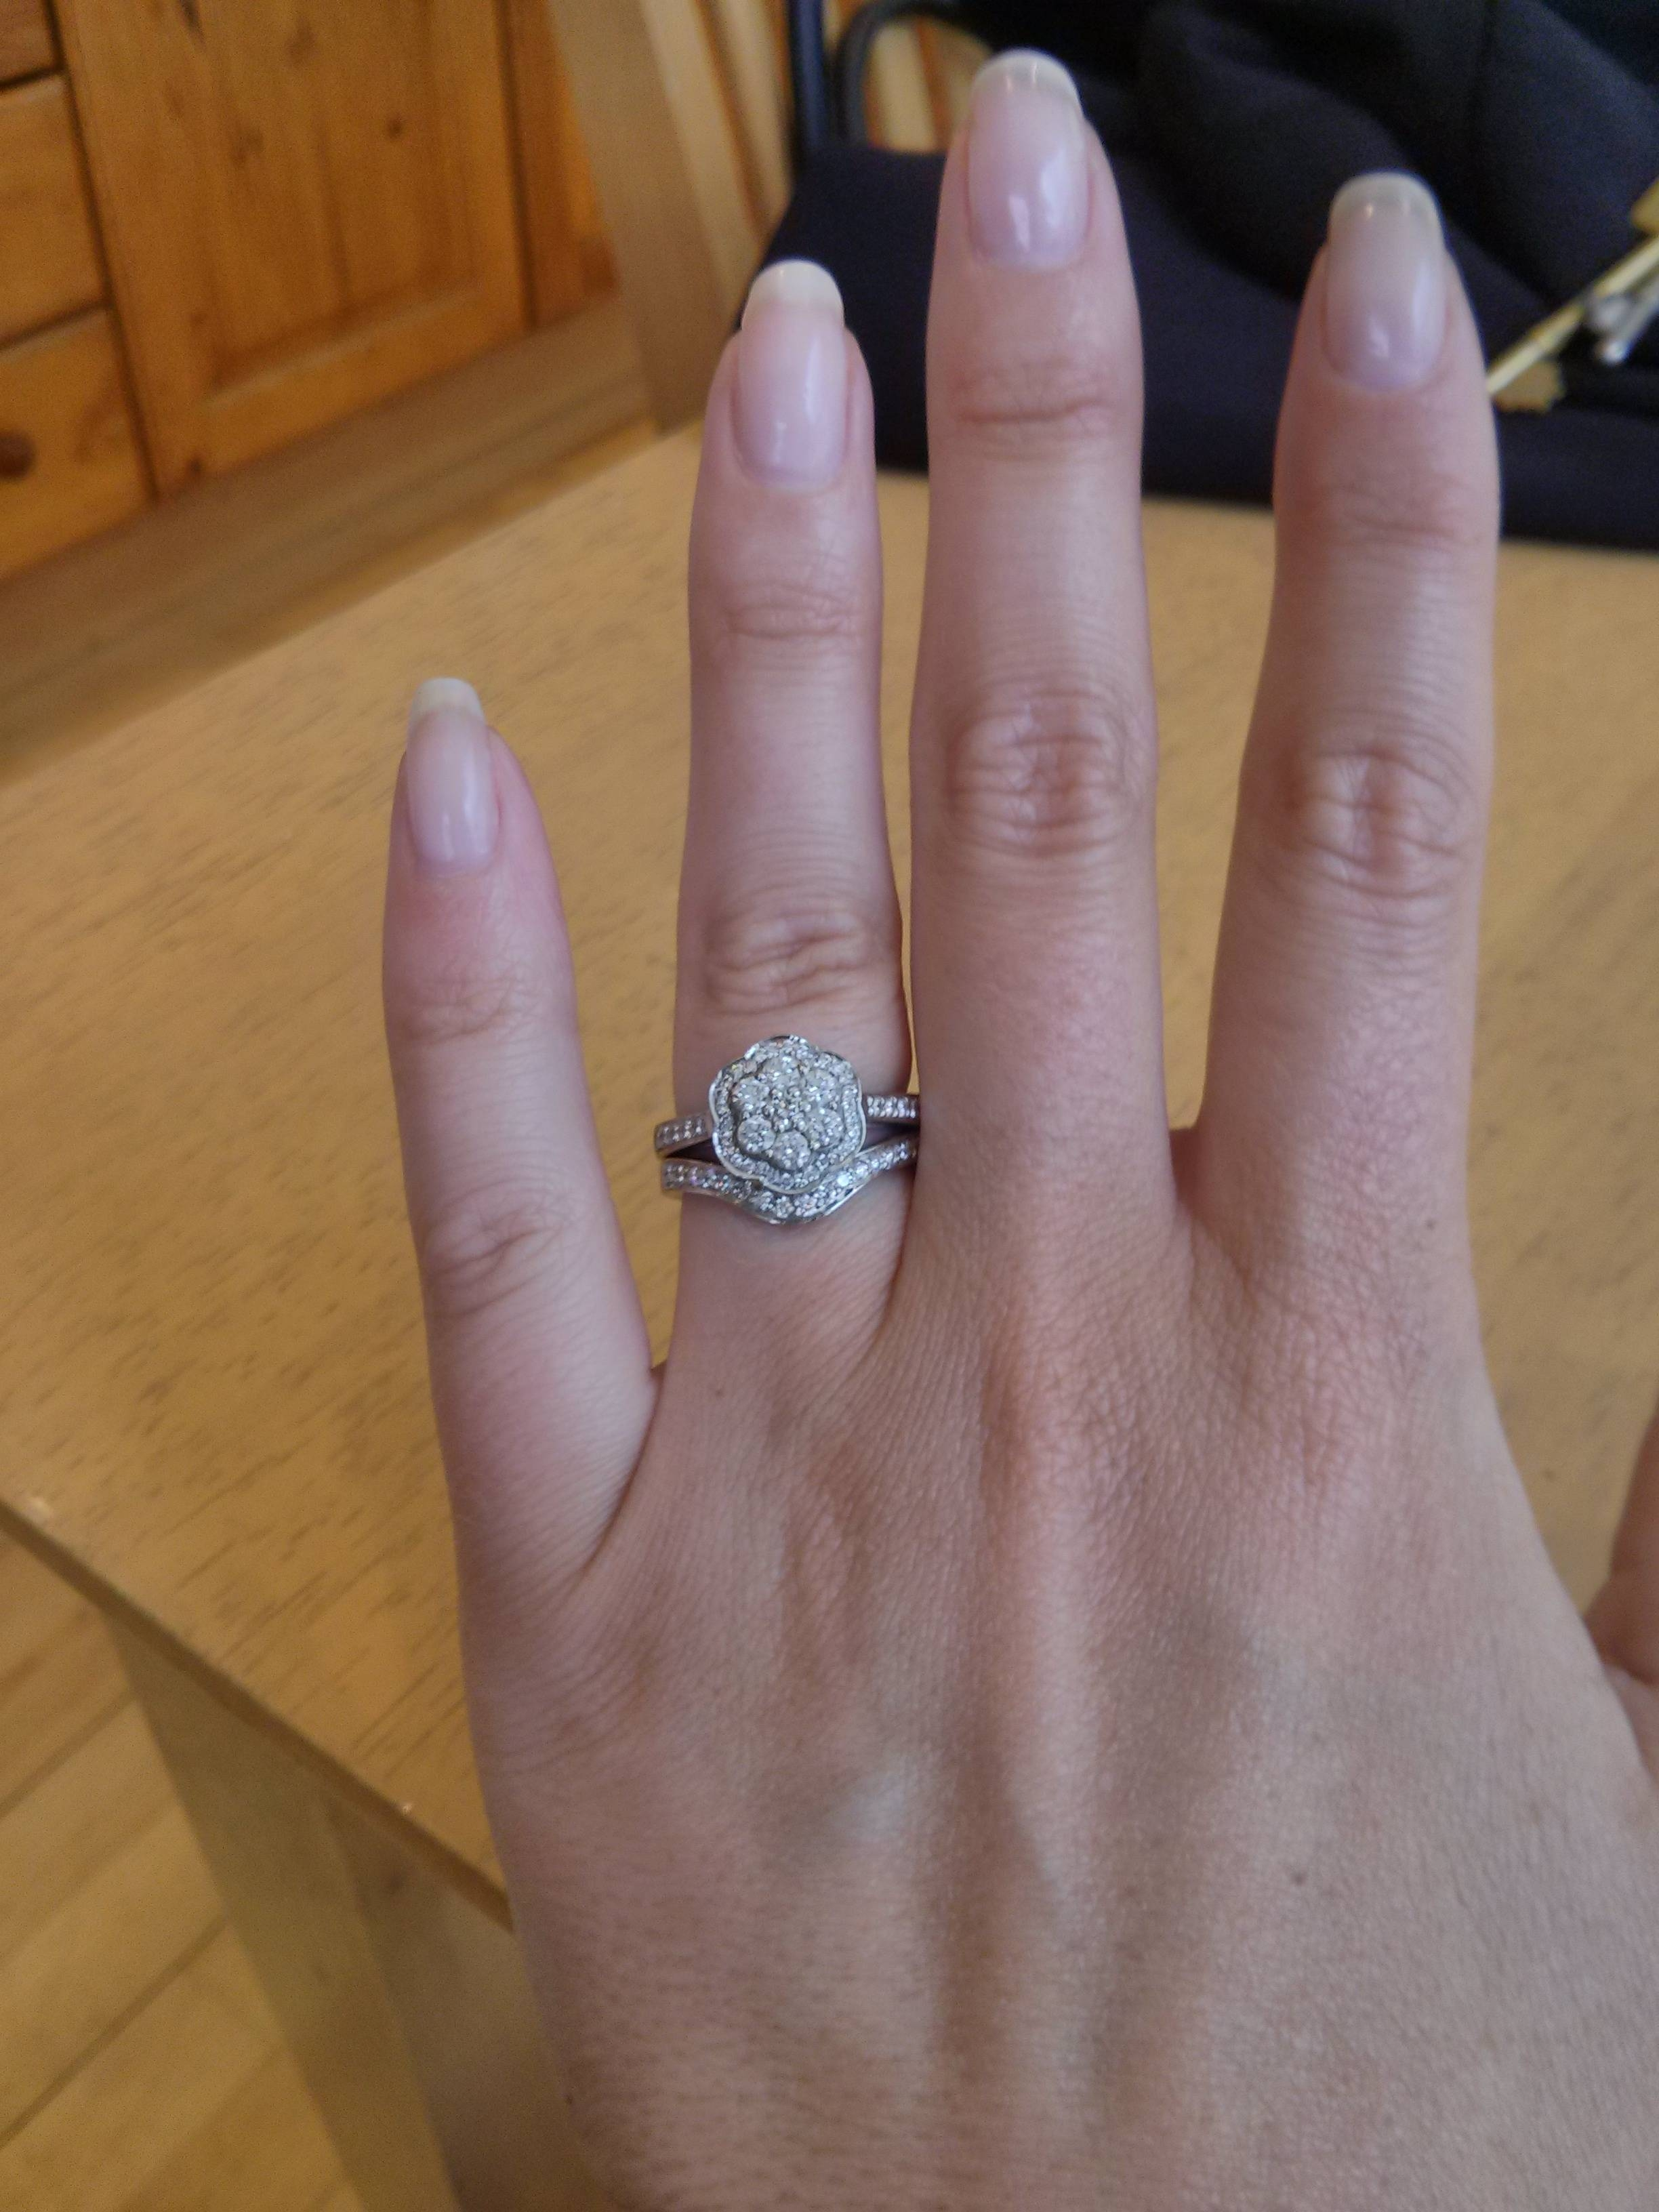 Wedding And Engagement Rings That Don't Sit Flush Together For Custom Wedding Bands To Fit Engagement Ring (View 12 of 15)